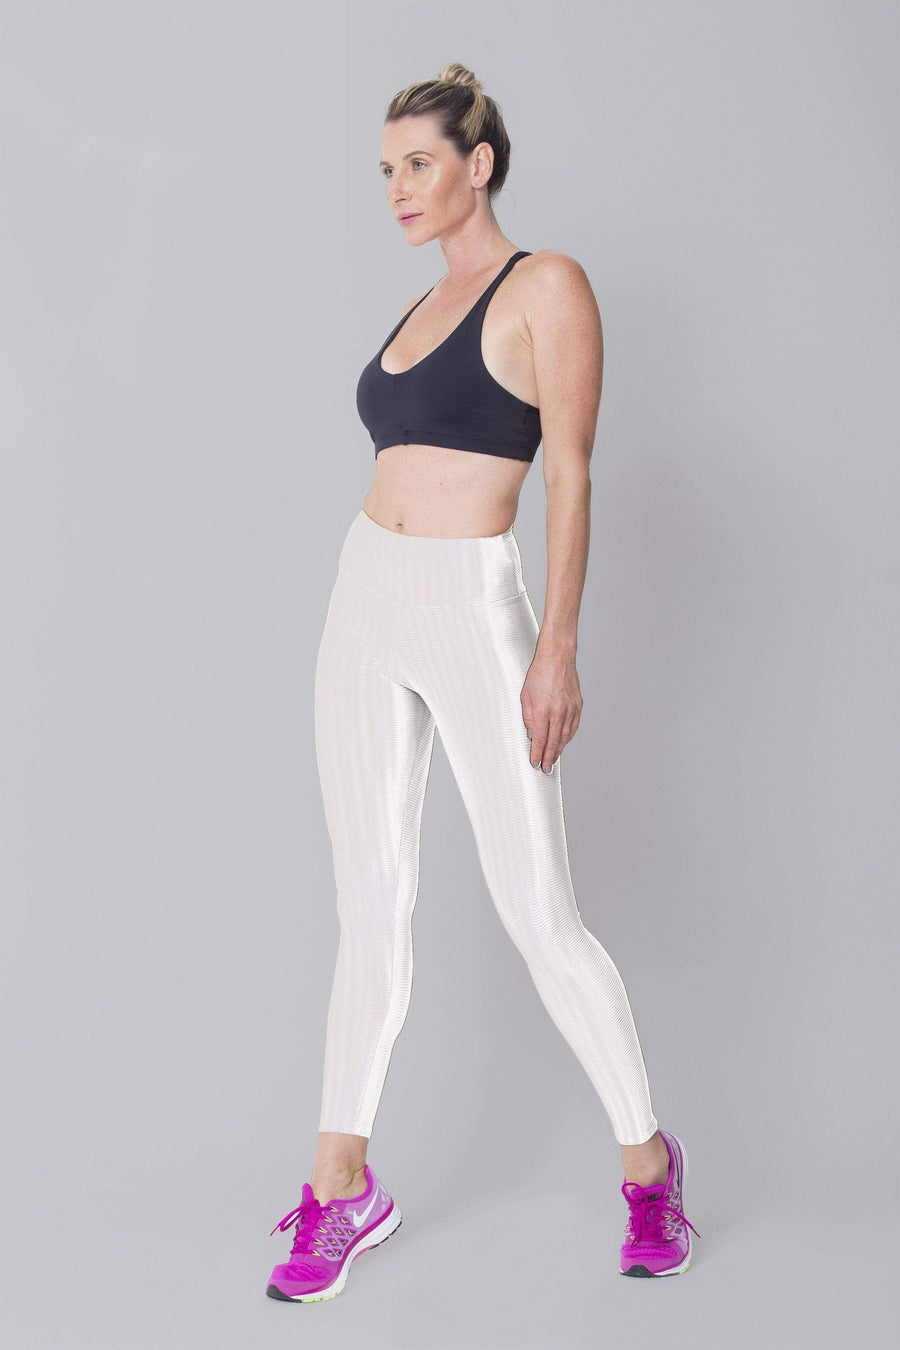 White 3D Disco Leggings - Sam's Fitness Goods